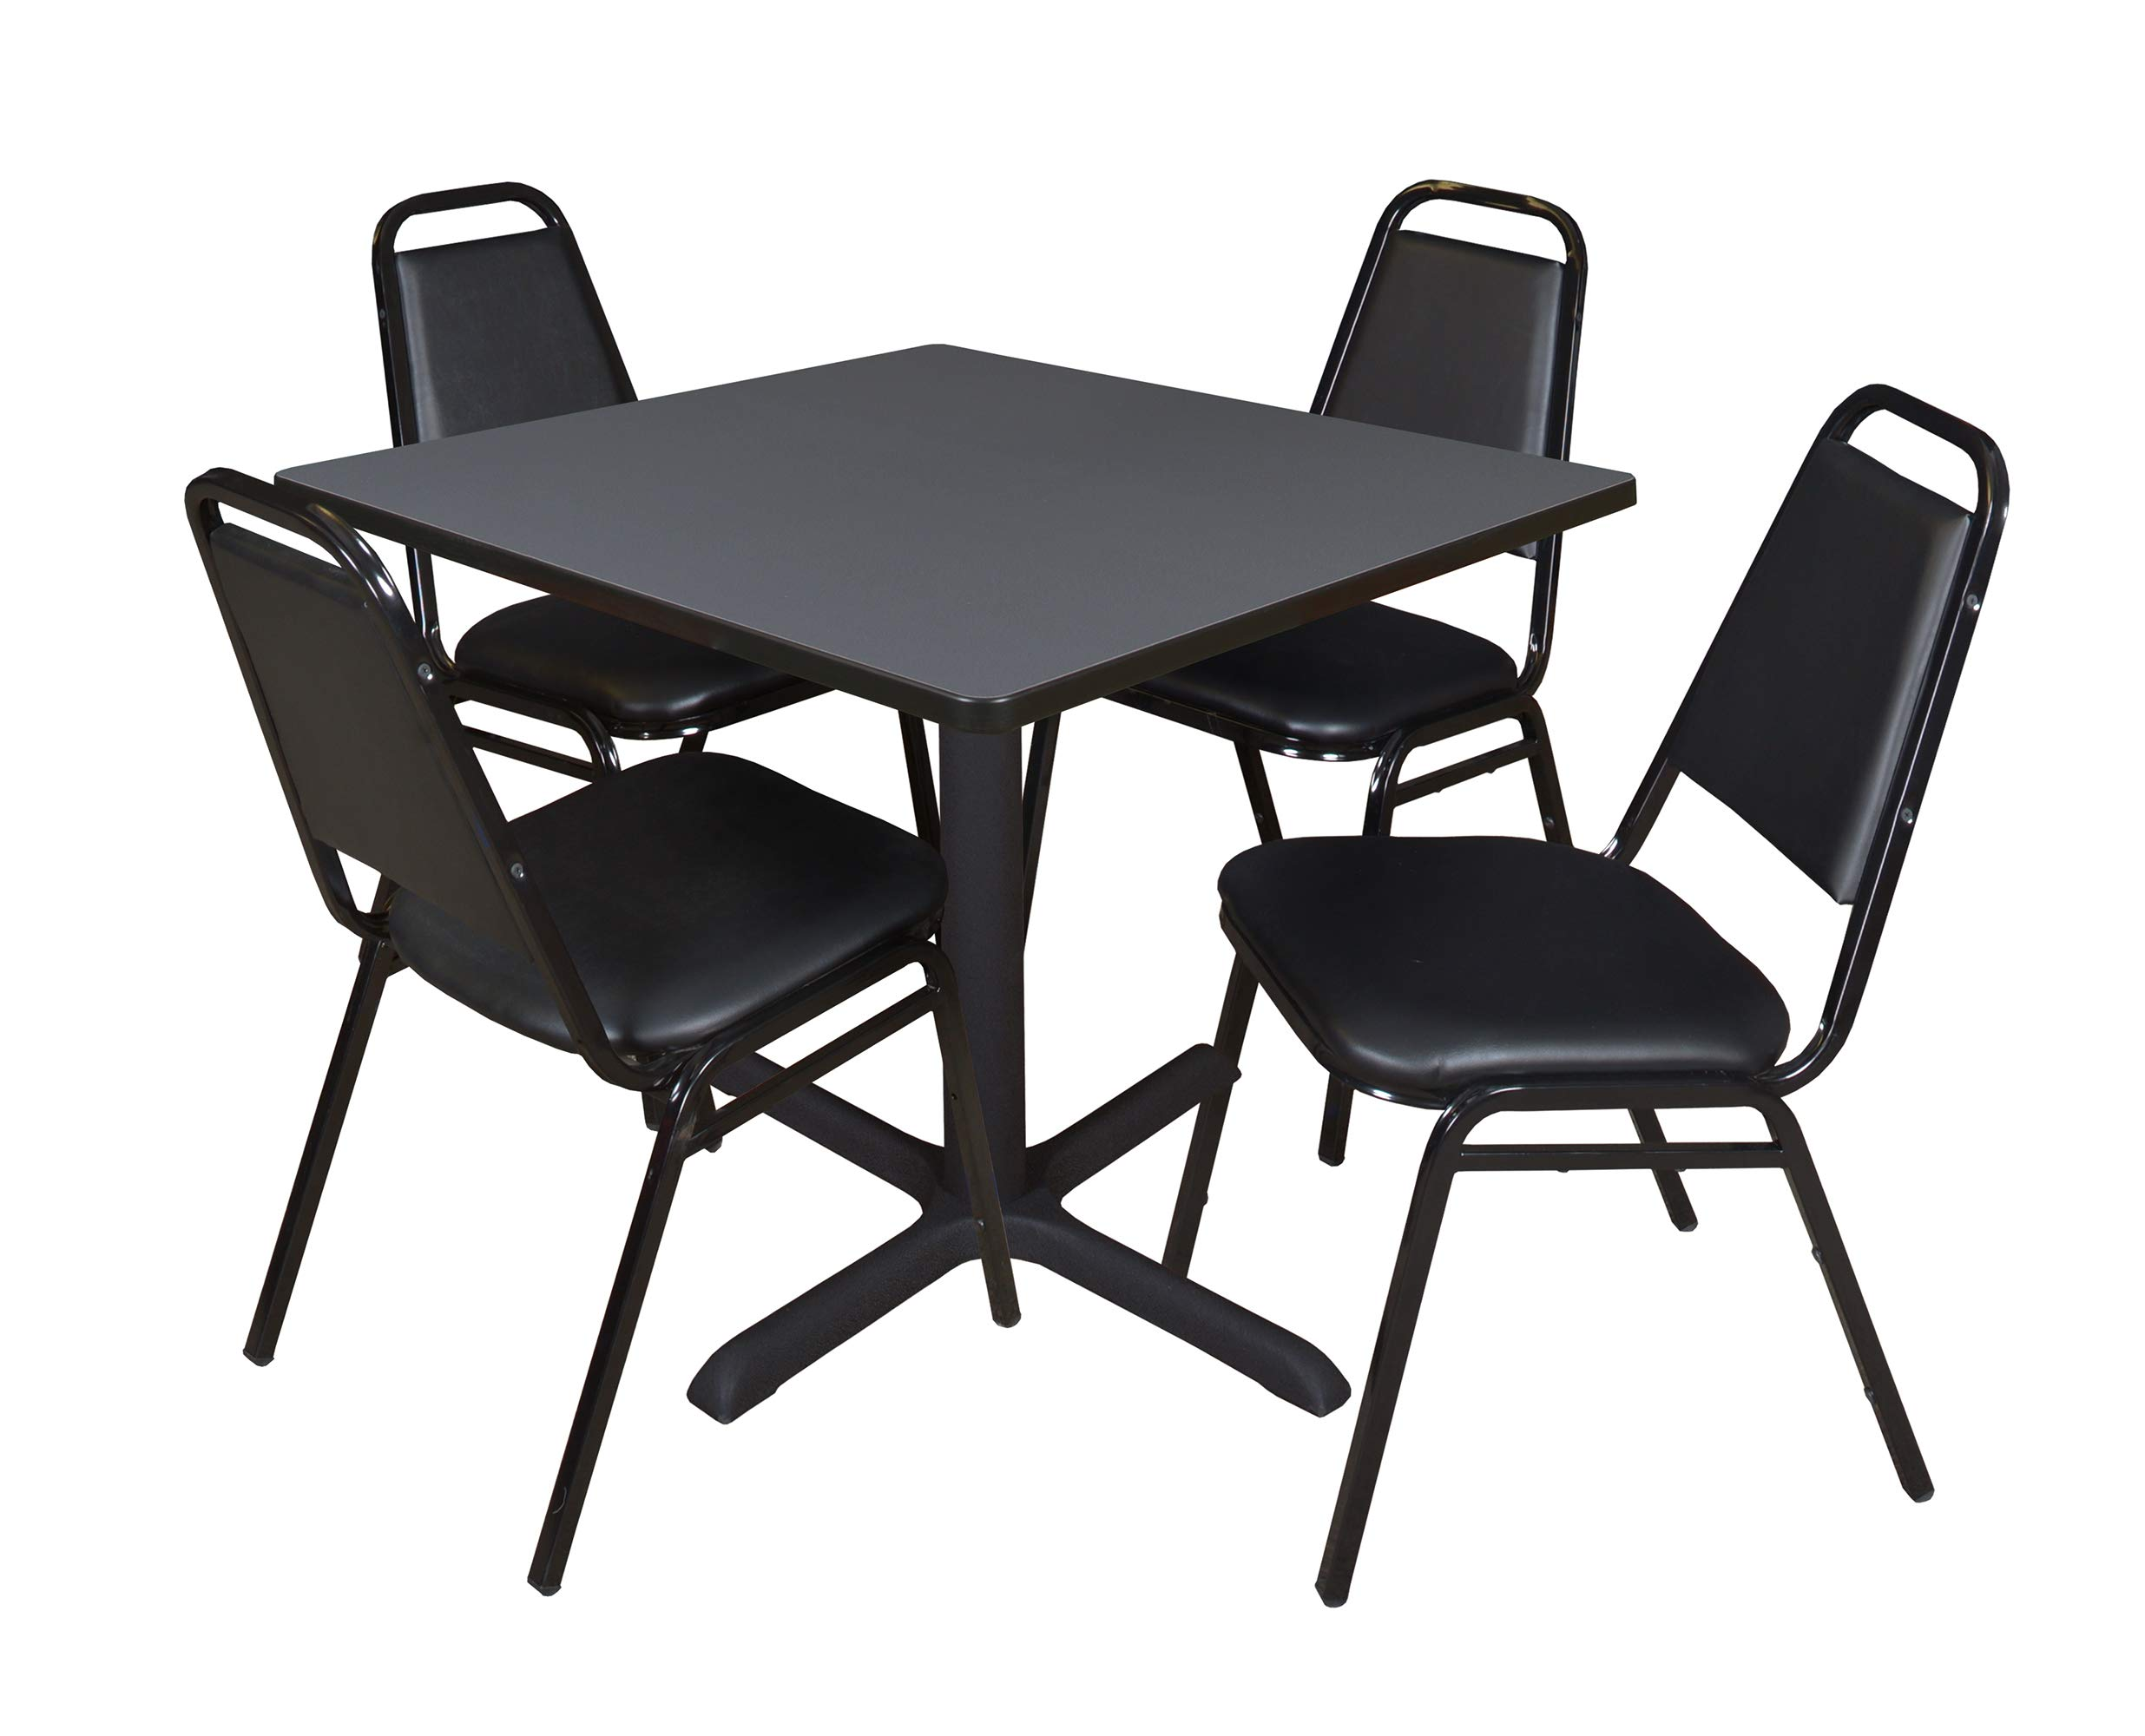 Cain 42'' Square Breakroom Table- Grey & 4 Restaurant Stack Chairs- Black by Regency Seating